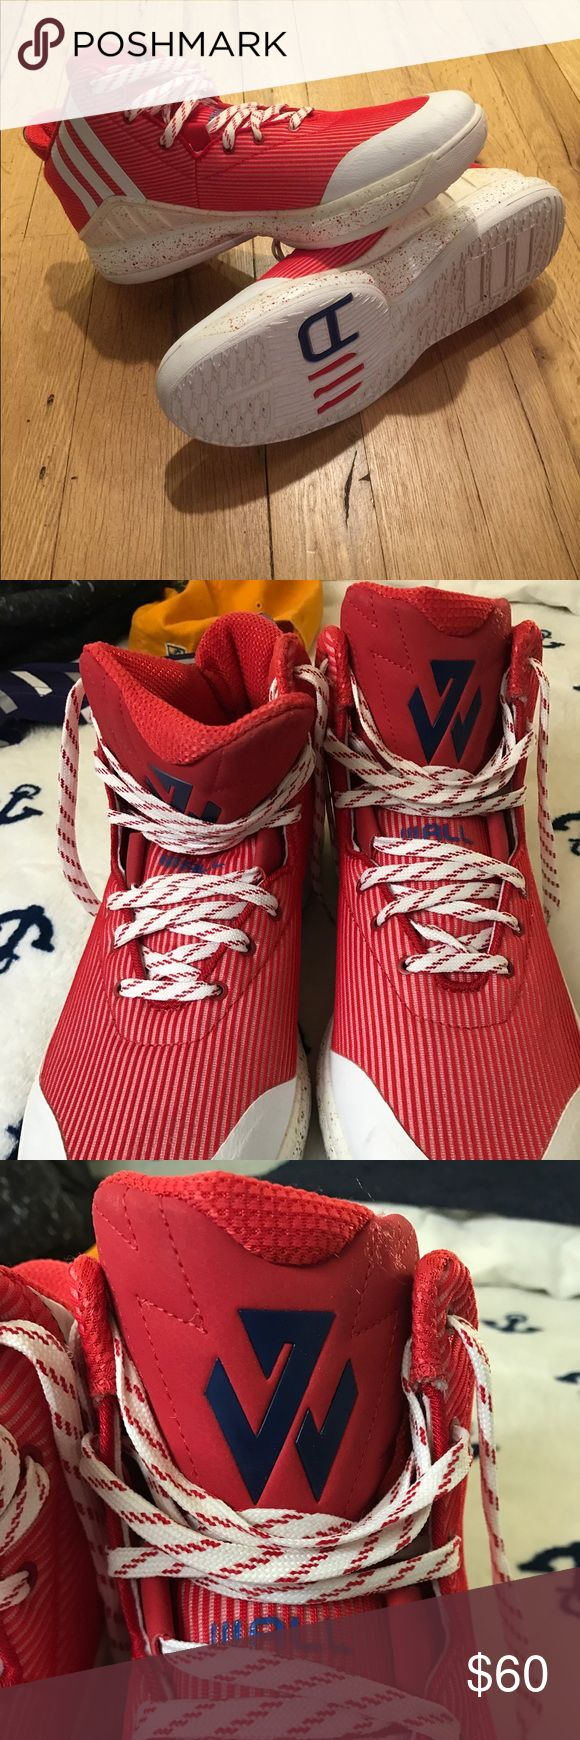 Adidas John Wall Basketball Shoes Red and white version of adidas J Wall shoes. No box or tag but never worn so excellent condition. Size 14. adidas Shoes Sneakers